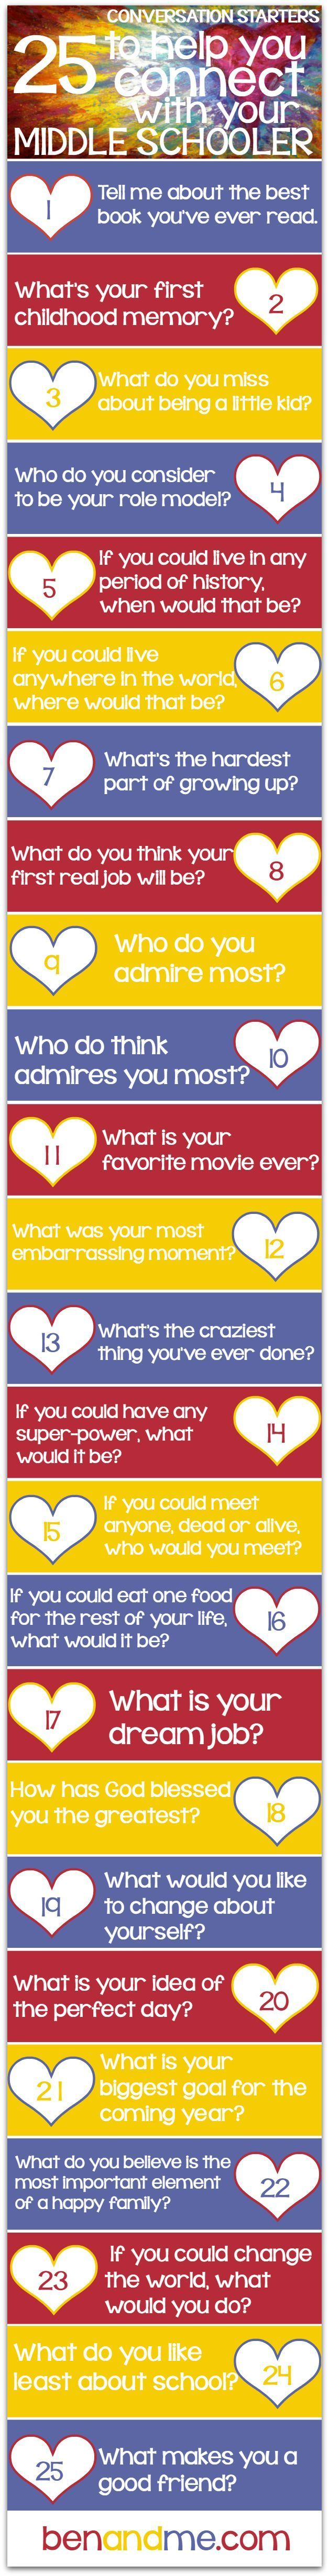 Conversation starters for parents and teens                                                                                                                                                                                 More